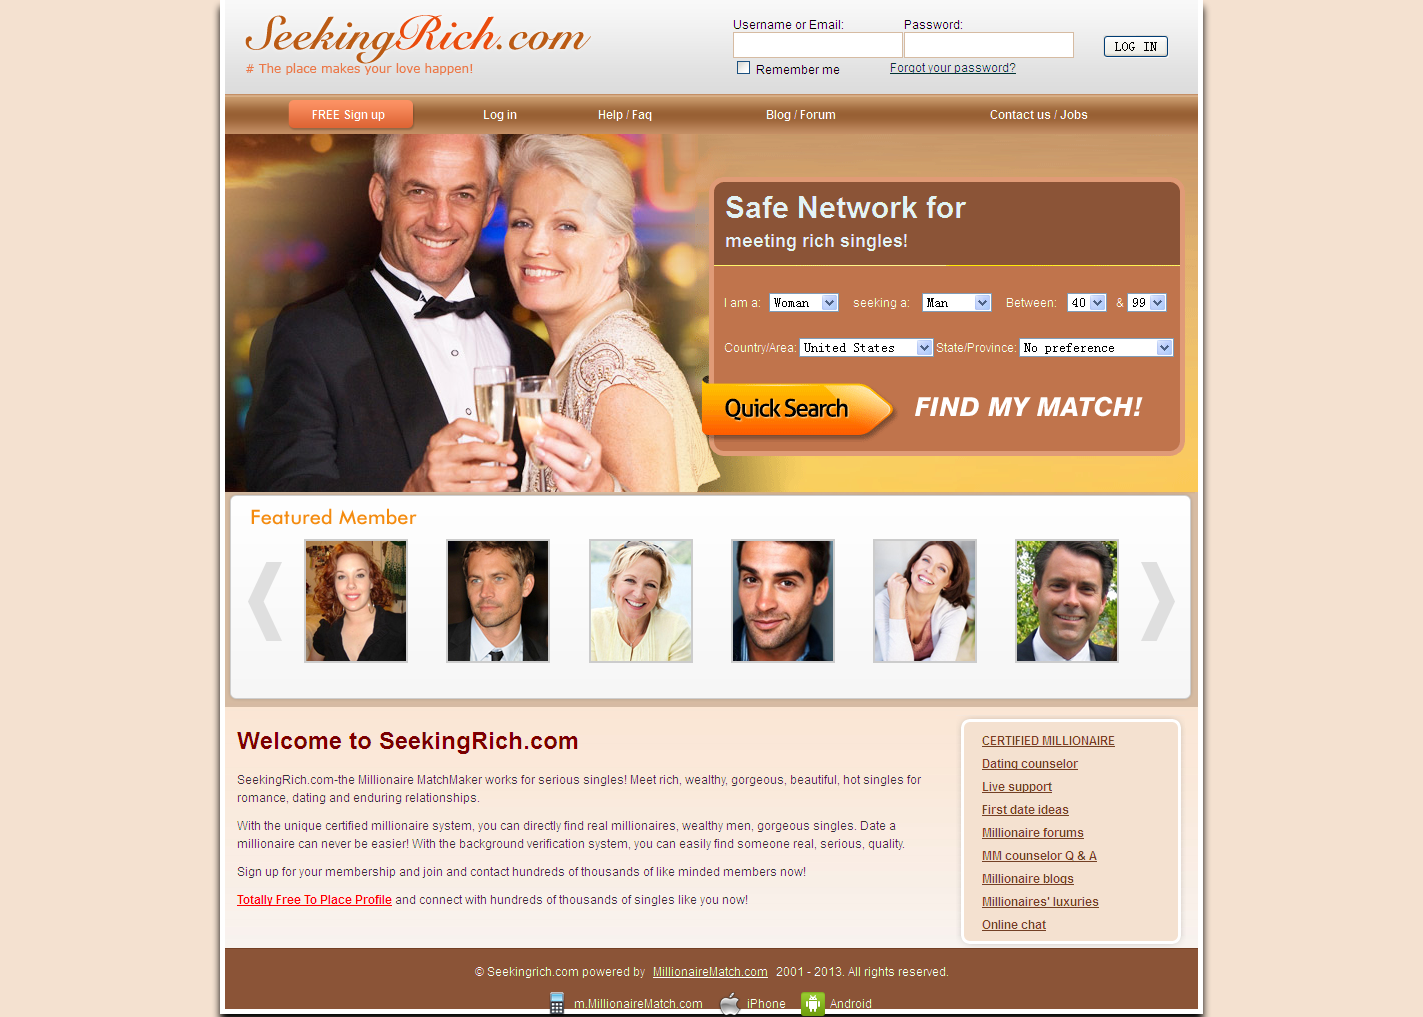 dating website suggest a date Explore datingcom and enjoy a global online dating website that offers real adventure worldwide dating is the best for those ready to experience a dating site with a truly global dating membership.